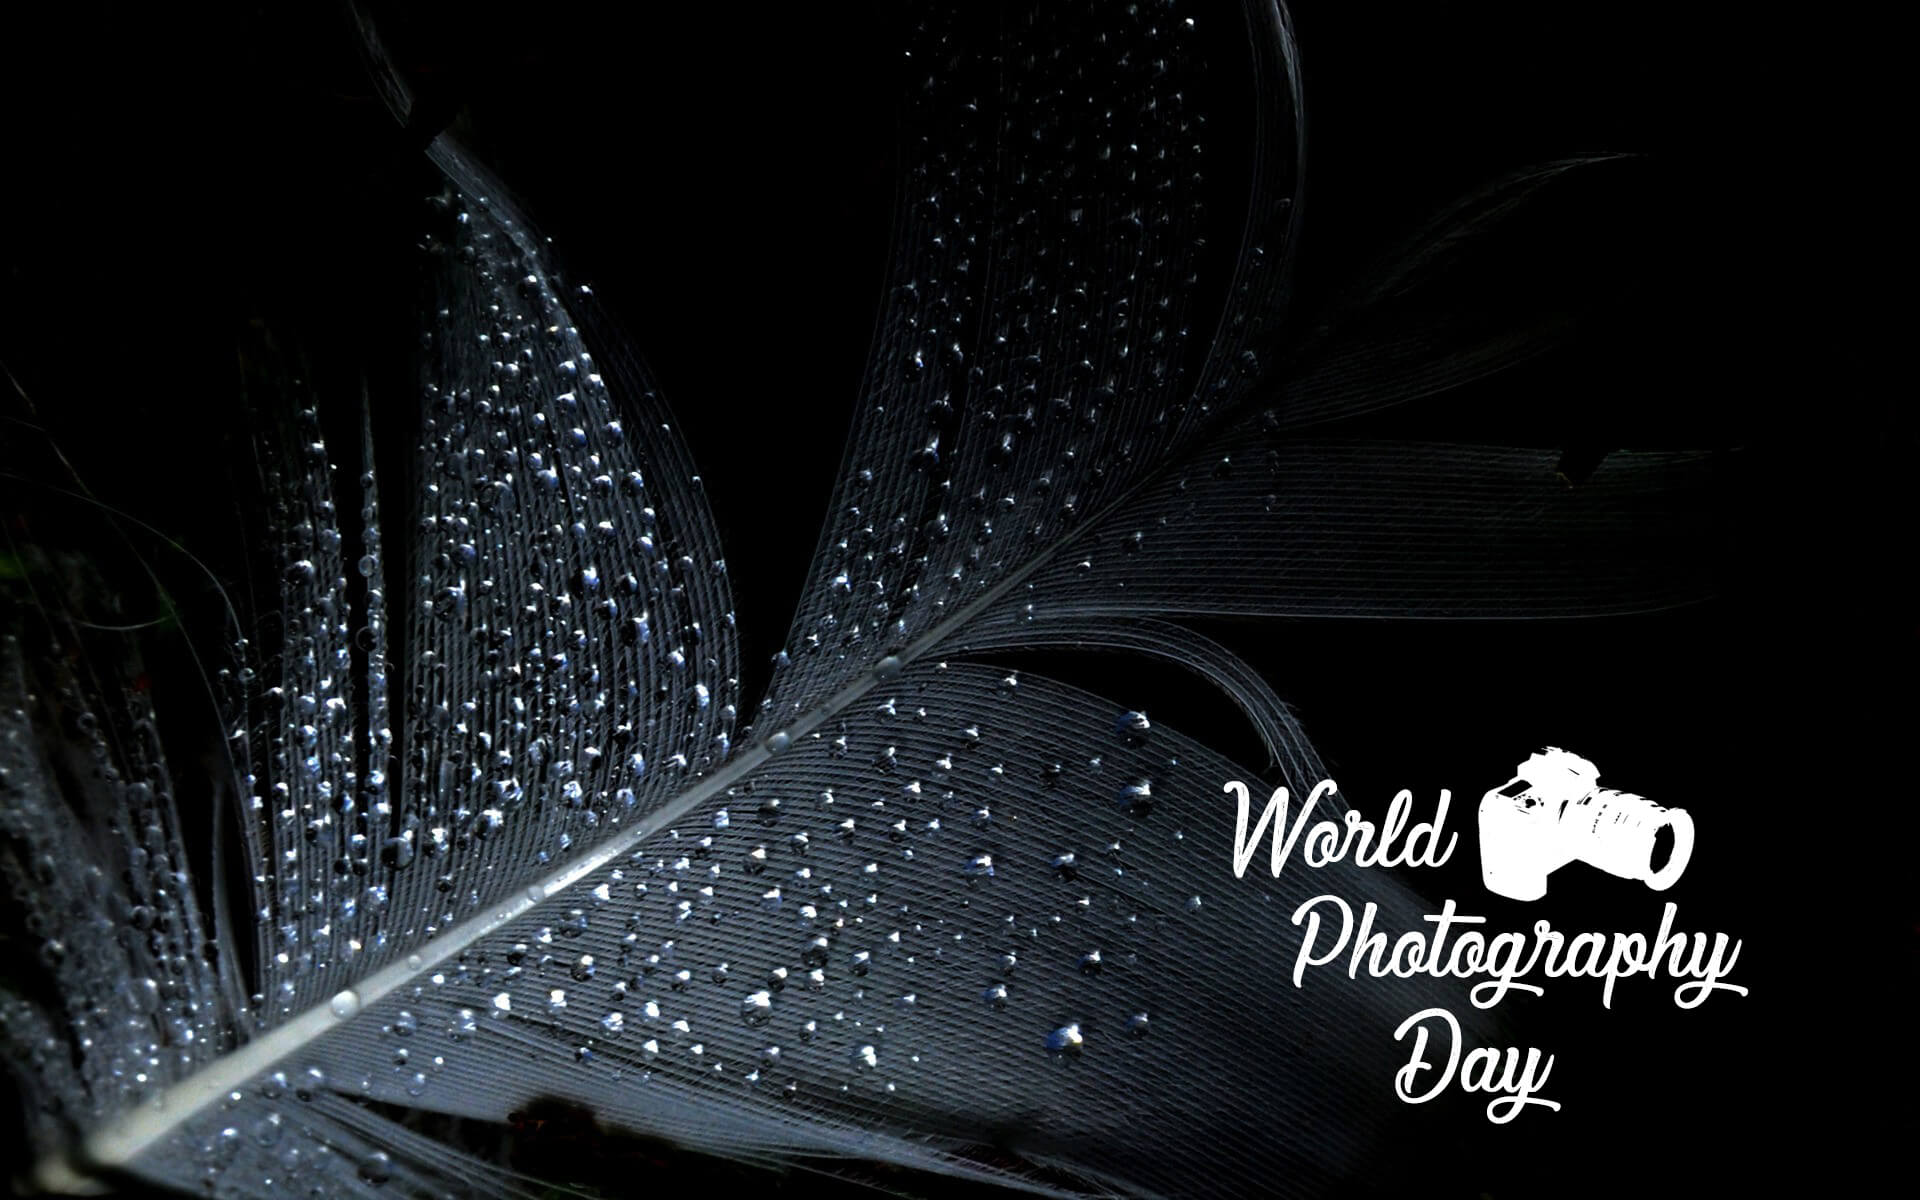 world photography day water drops black feather wallpaper